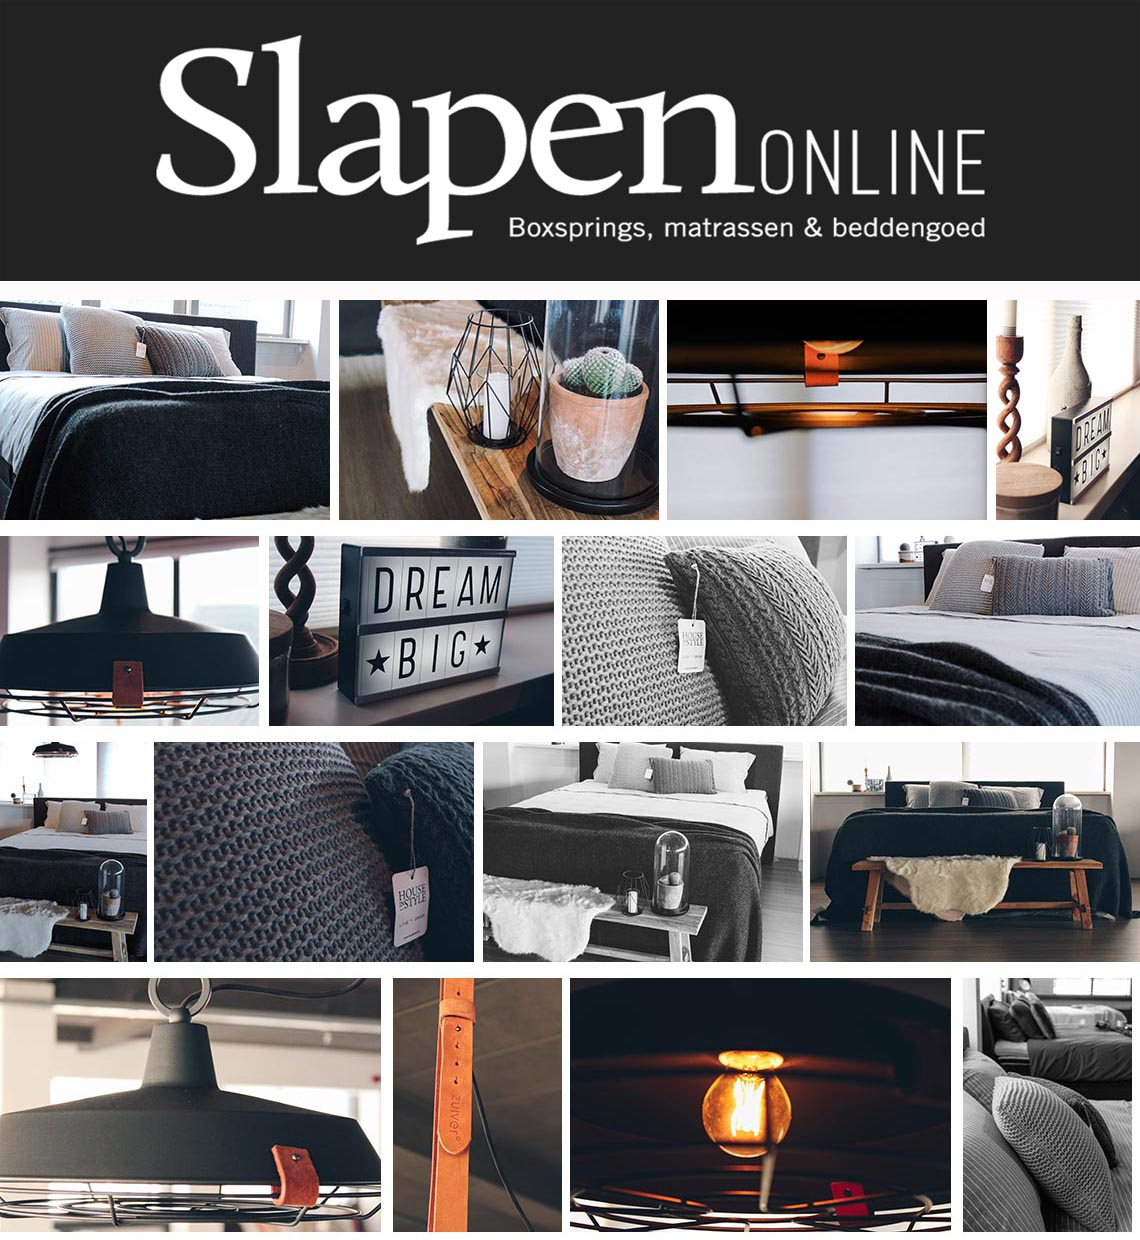 Slapen Online reviews